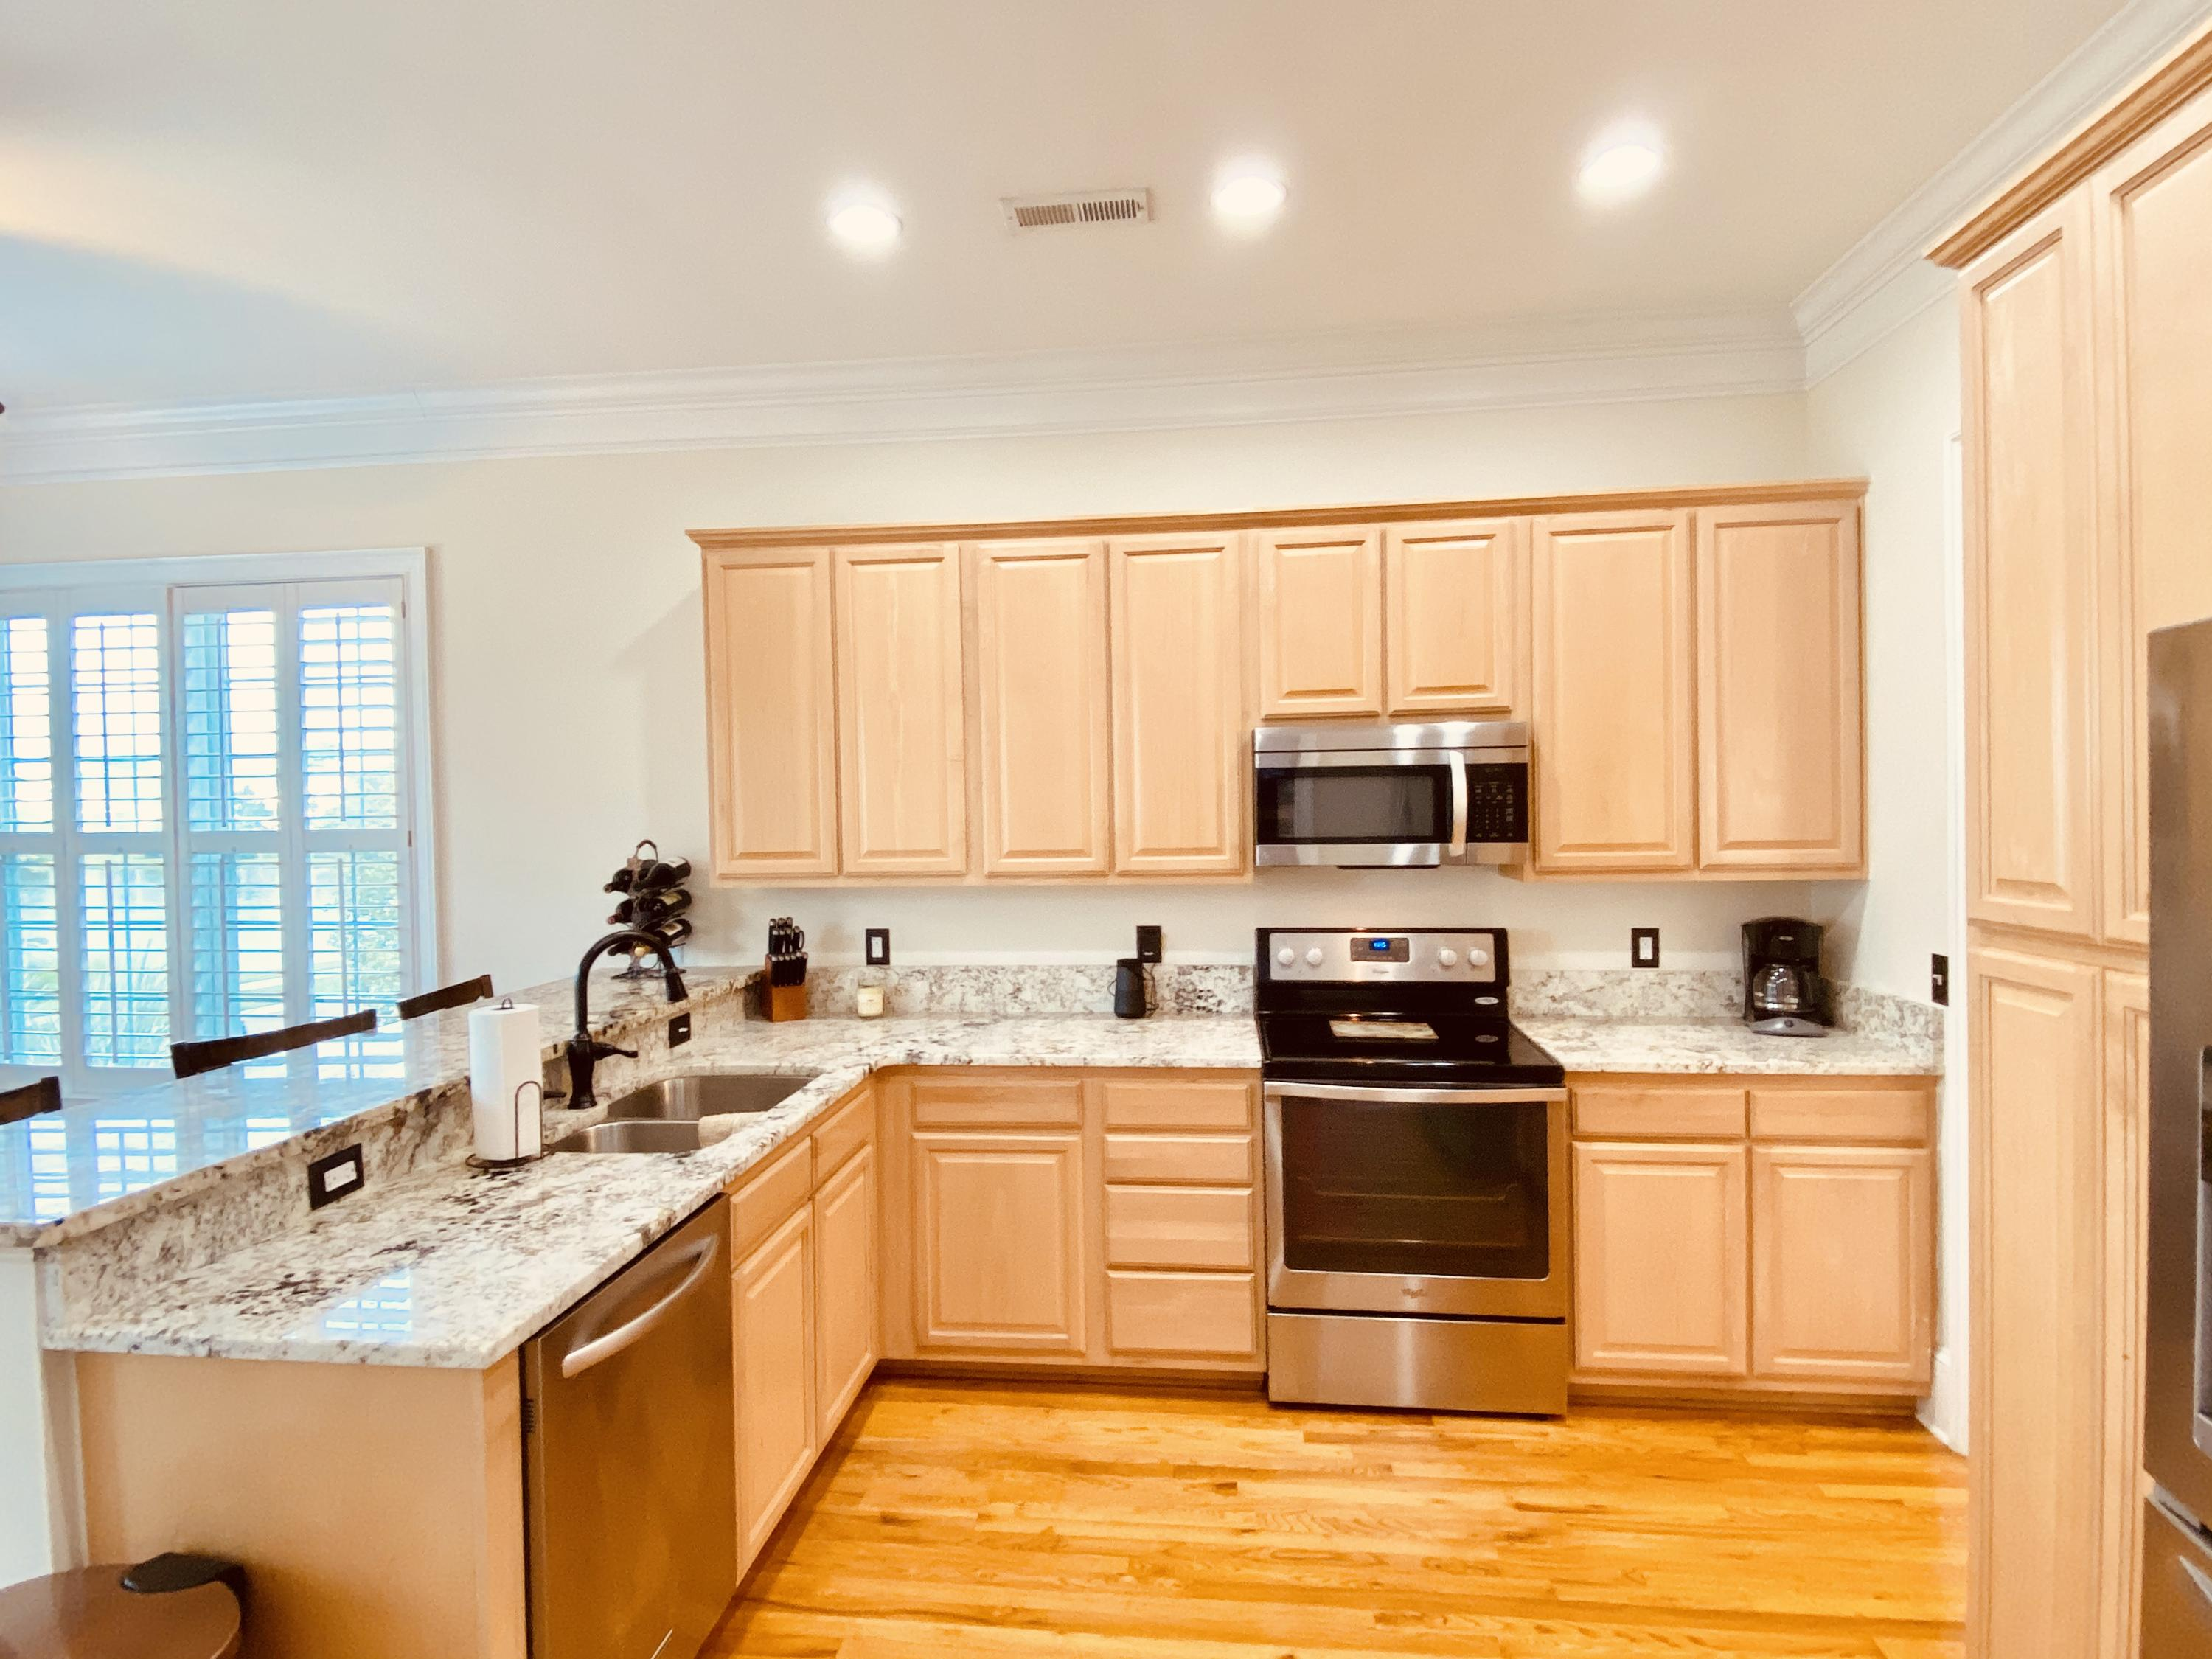 Rivertowne Country Club Homes For Sale - 1721 Rivertowne Country Club, Mount Pleasant, SC - 52